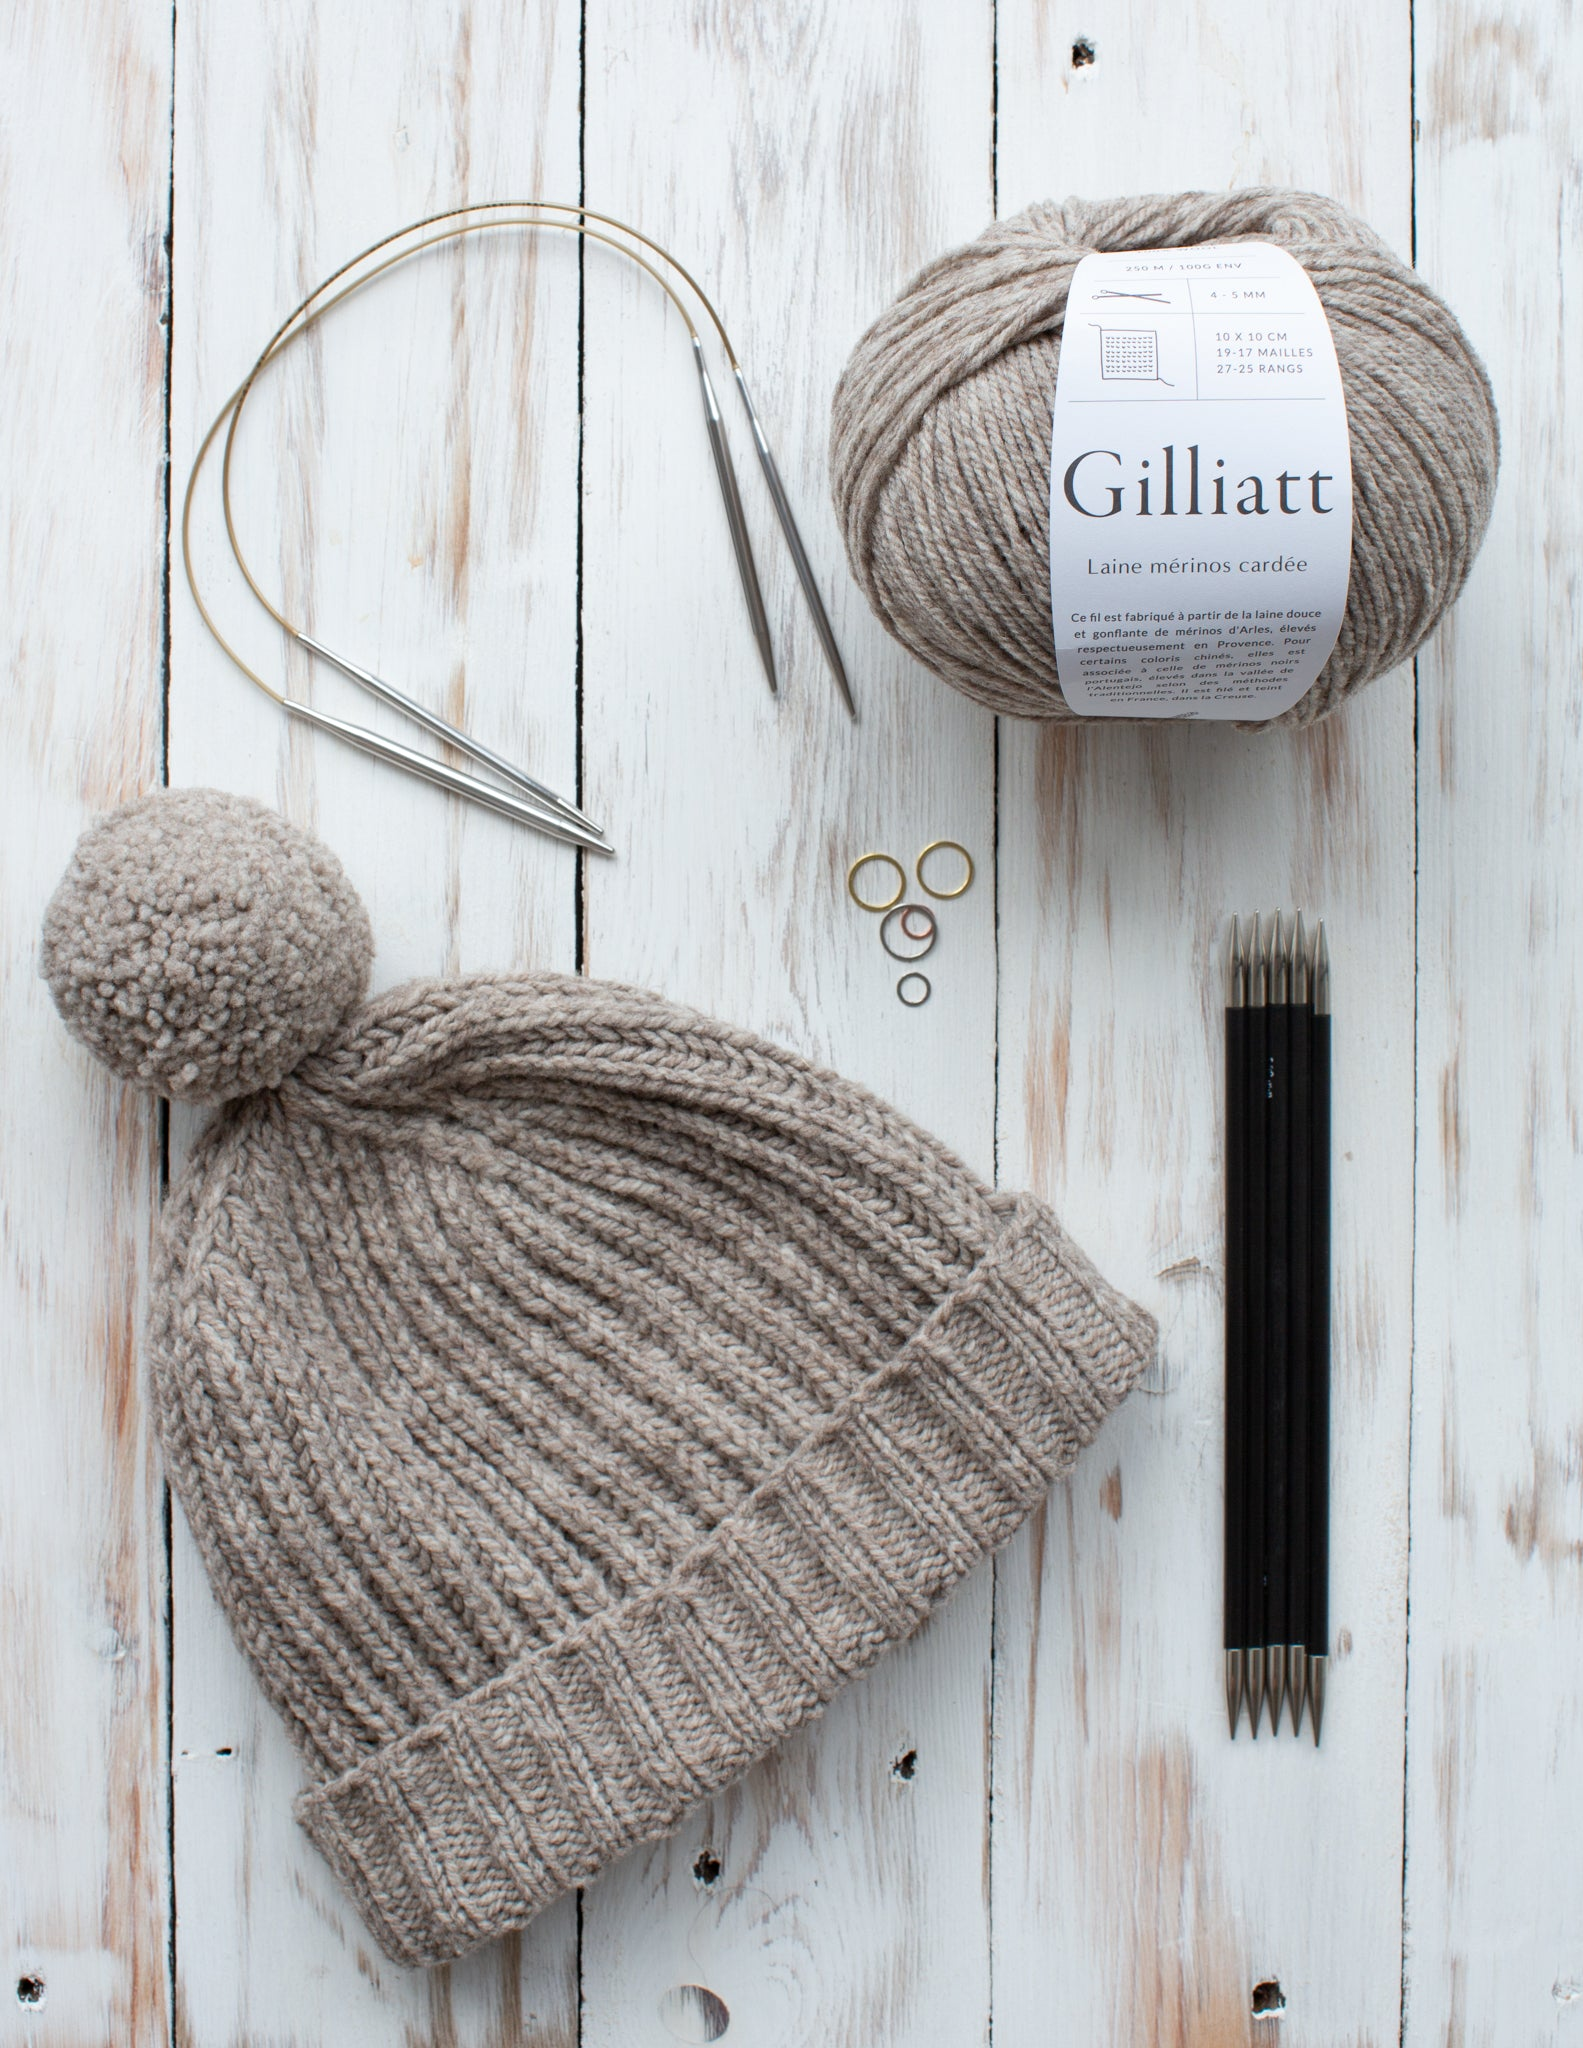 Flat lay of an oatmeal coloured hat with pompom, with needles and yarn shown alongside.